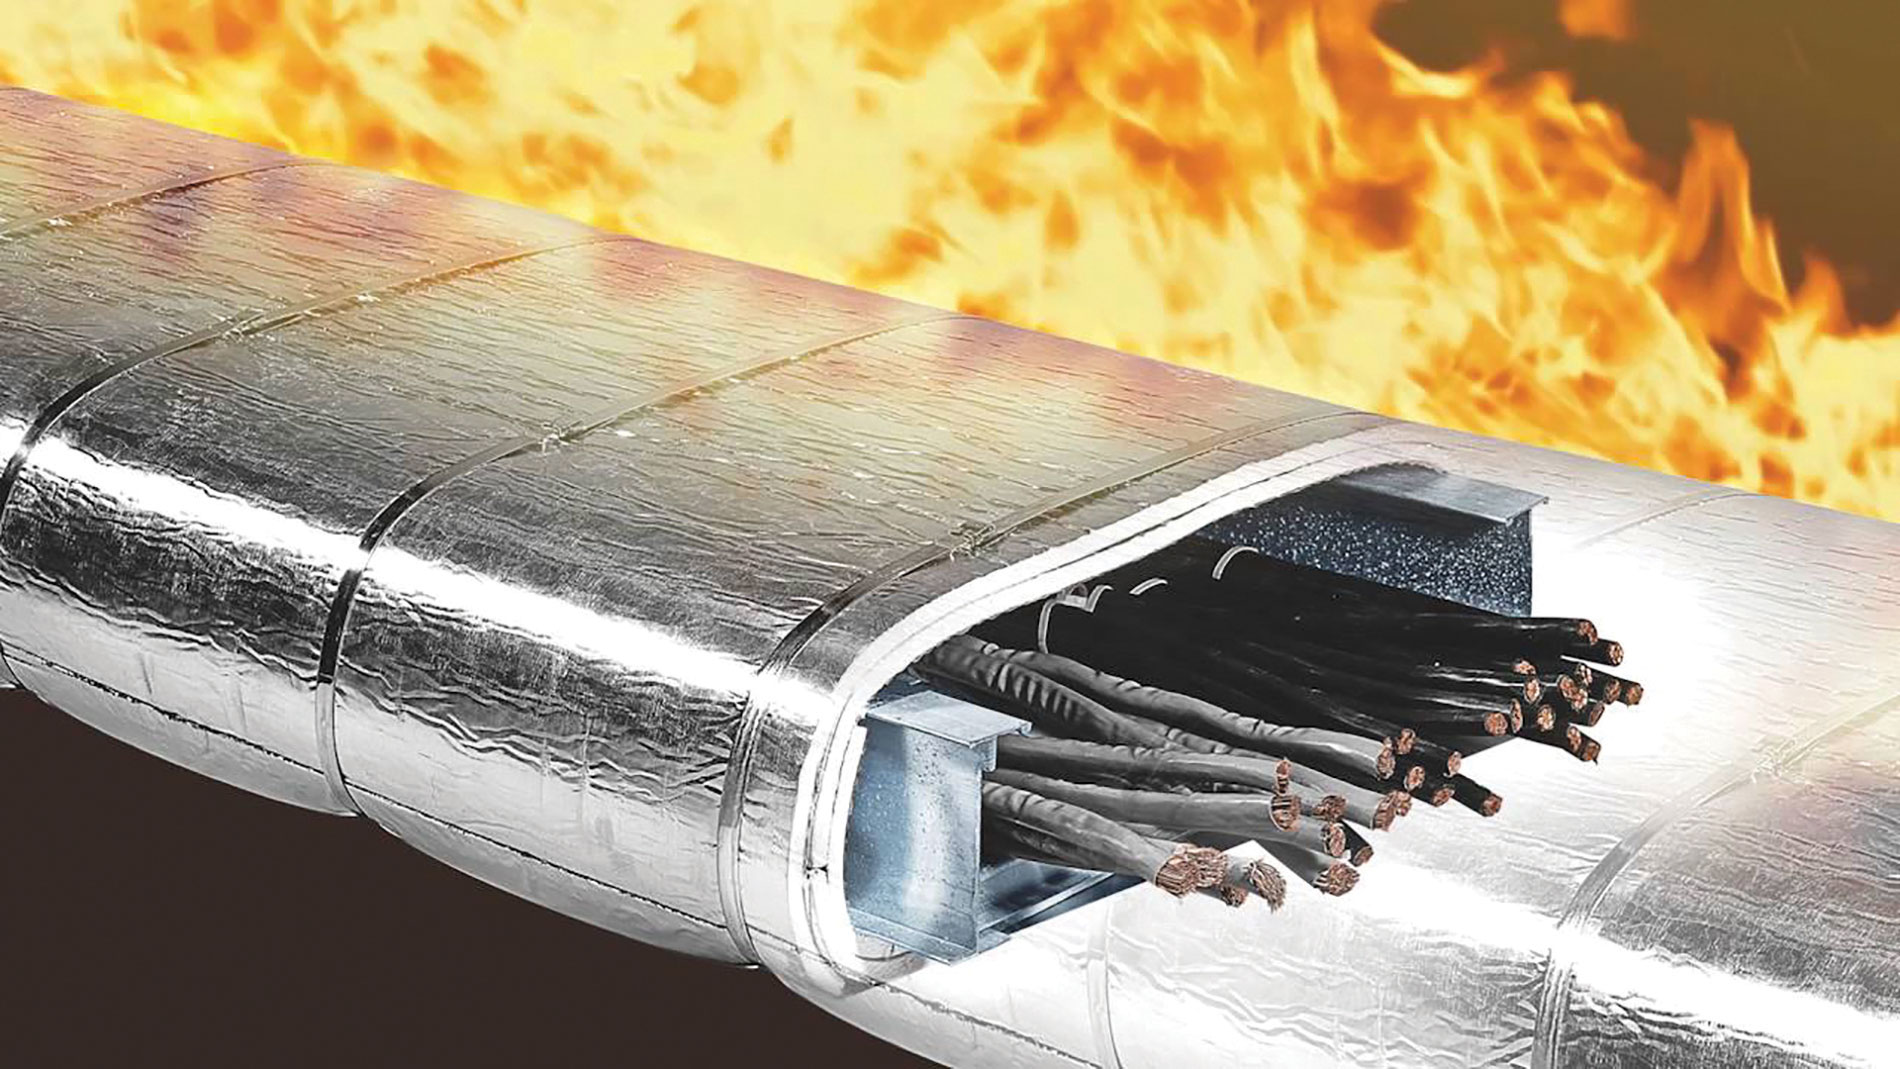 3M's Interam Endothermic Mat (E-Mat) installs quickly and releases chemically bound water to cool outer surfaces and significantly slow heat transfer in the event of a fire.